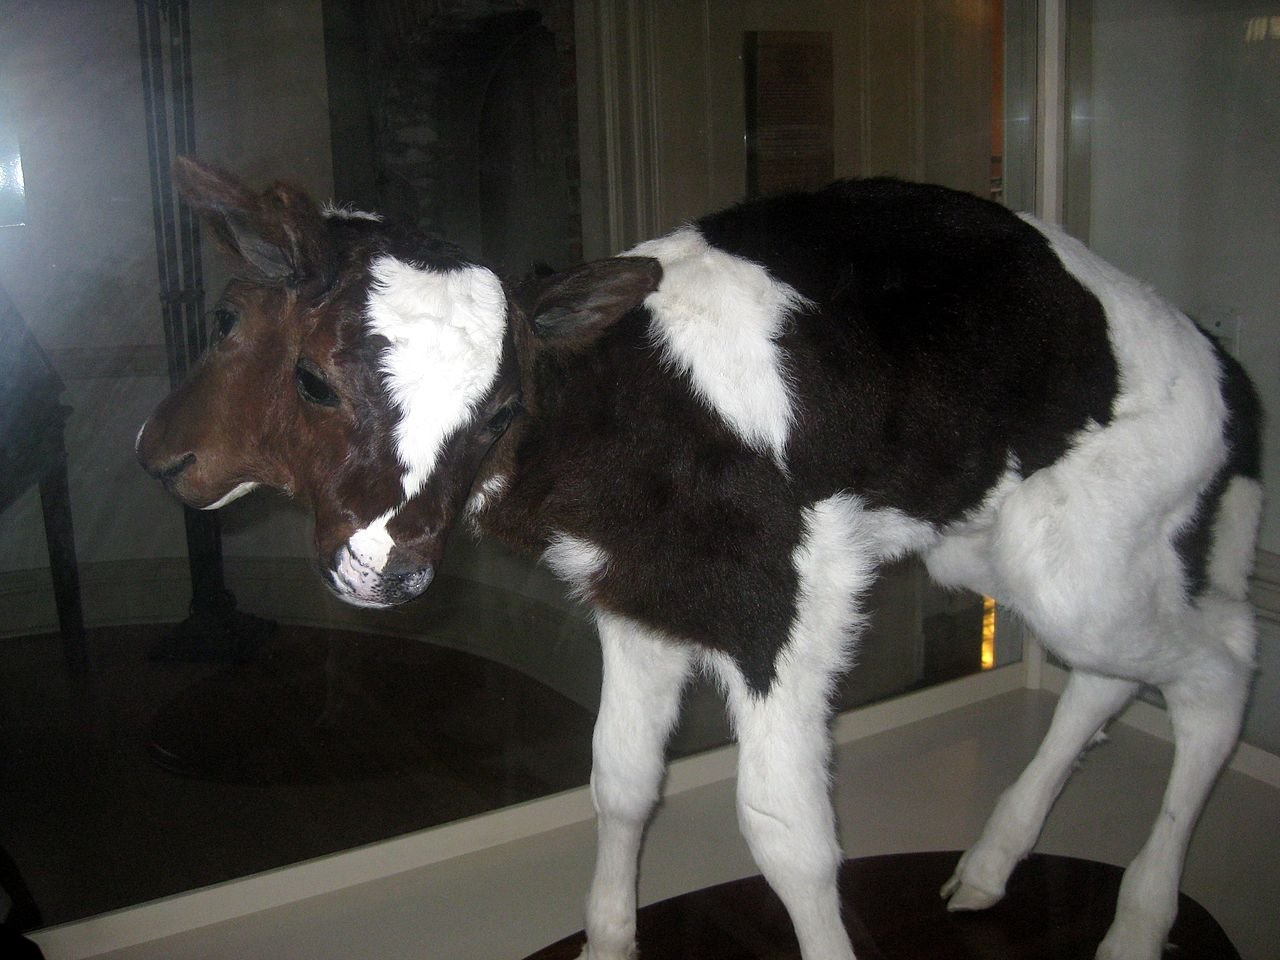 The famous bicephalic calf, which has resided in the Old State House's Museum of Natural and Other Curiosities since 1996, 200 years after the State House (and the original MONAOC) opened.